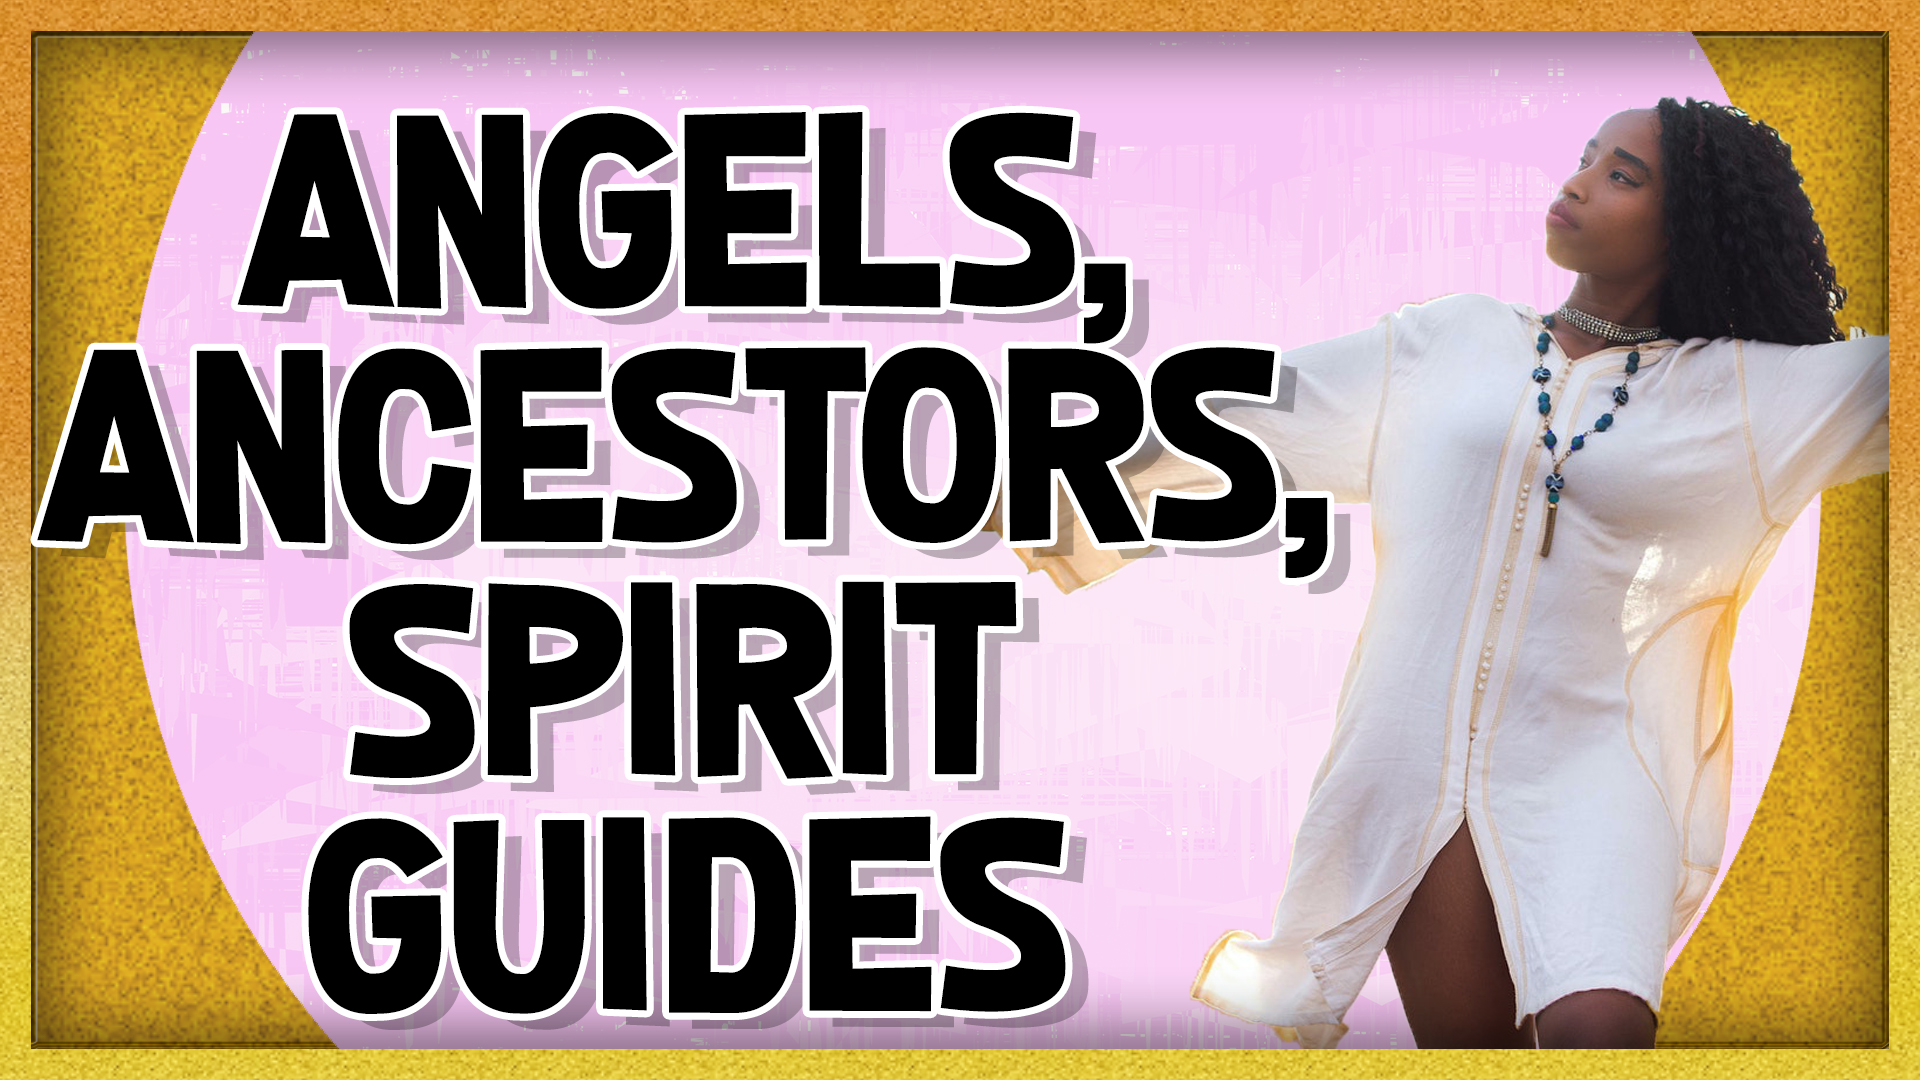 Angels, Ancestors, and Spirit Guides How to Connect with Your Spirit Family